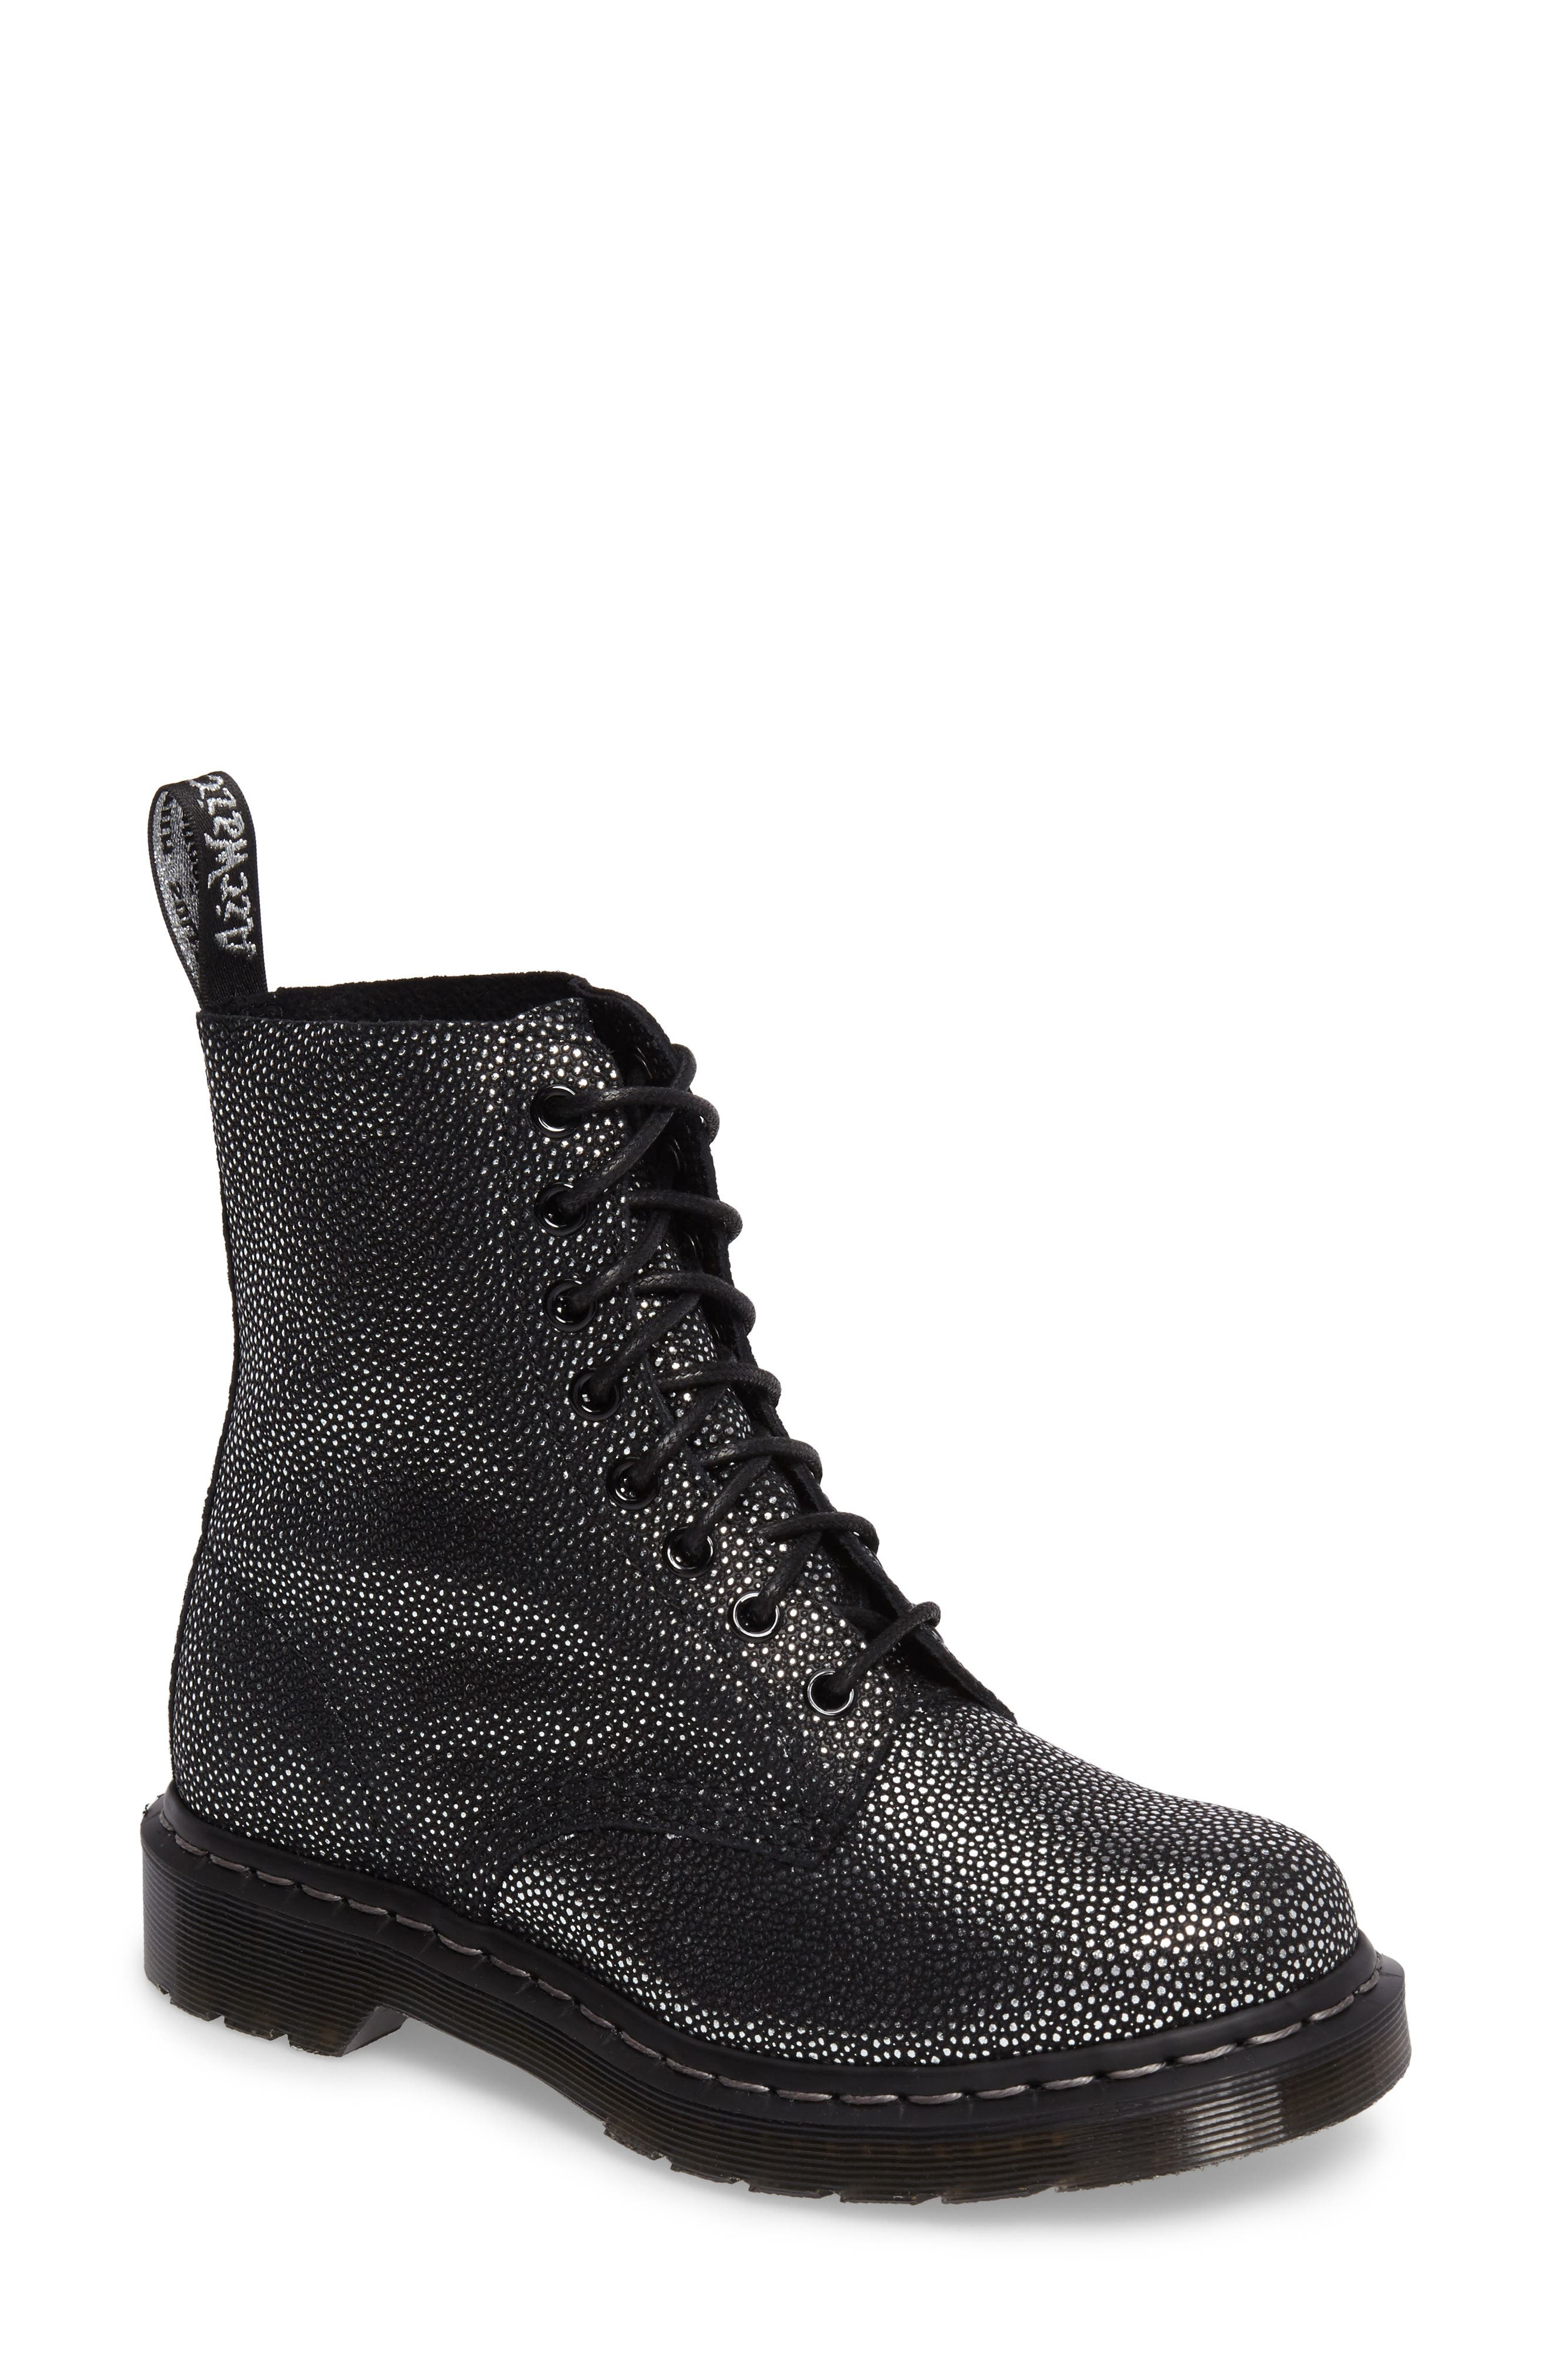 Alternate Image 1 Selected - Dr. Martens 1460 Boot (Women)